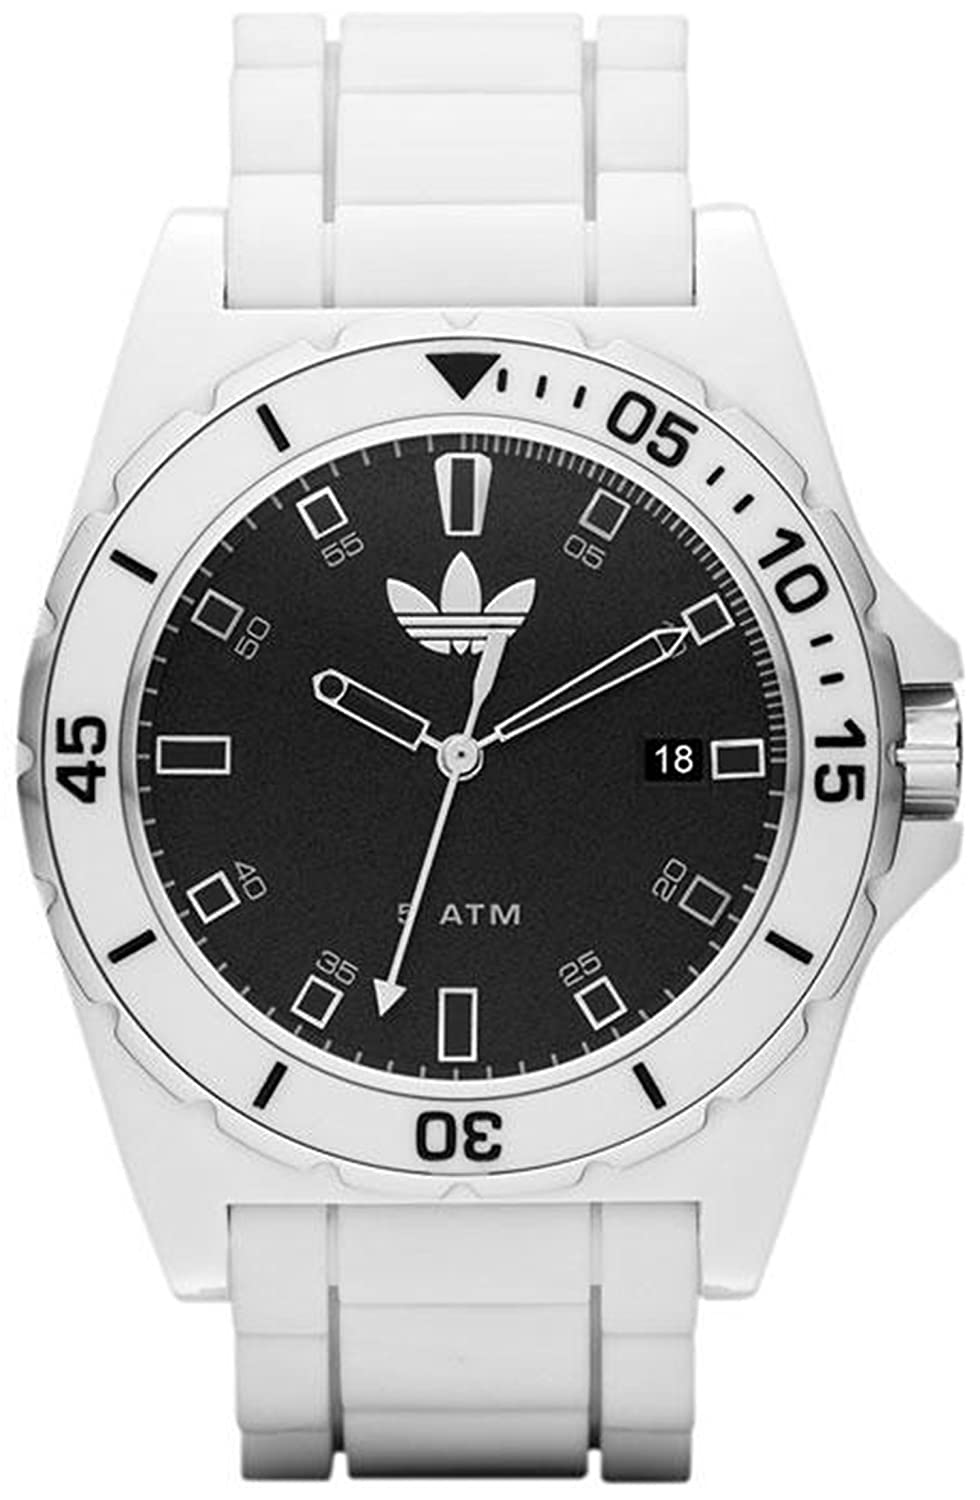 Amazon.com: Adidas Unisex Melbourne ADH2749 White Rubber ...